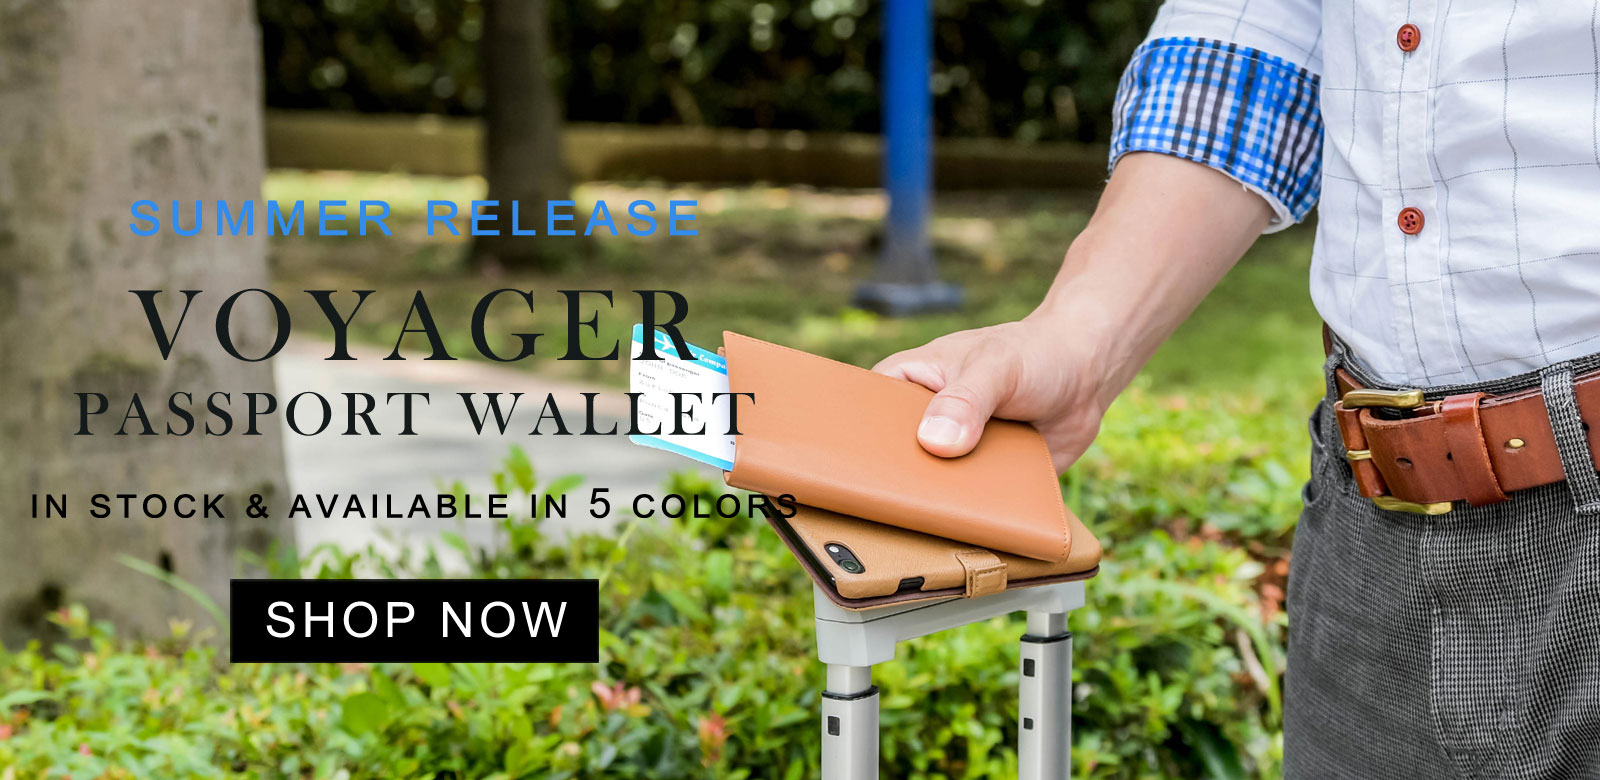 New Product for Summer - Voyager Passport Wallet for Summer Traveling